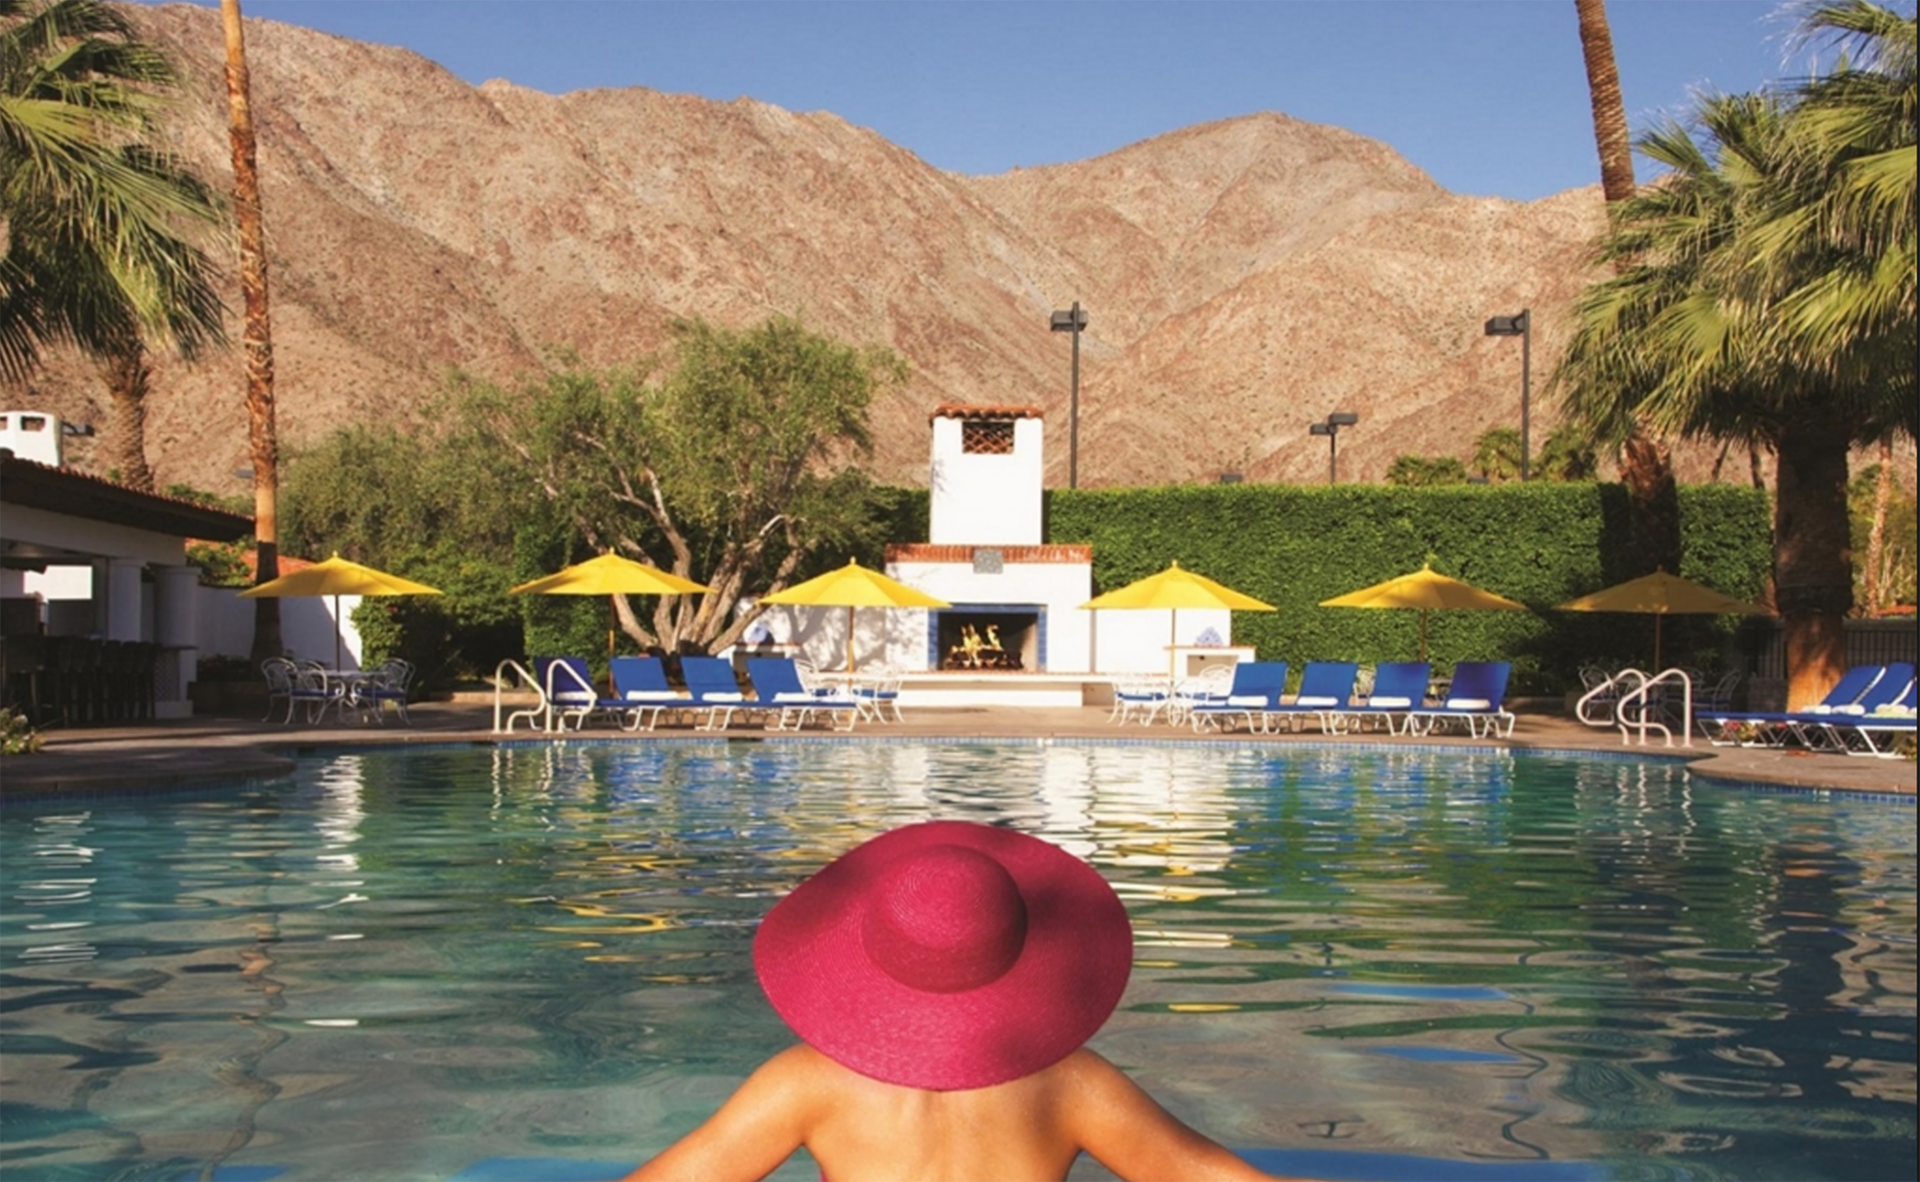 The spa pool at La Quinta is delicious. And no, that is not me in the pink hat, silly. I look better in blue.